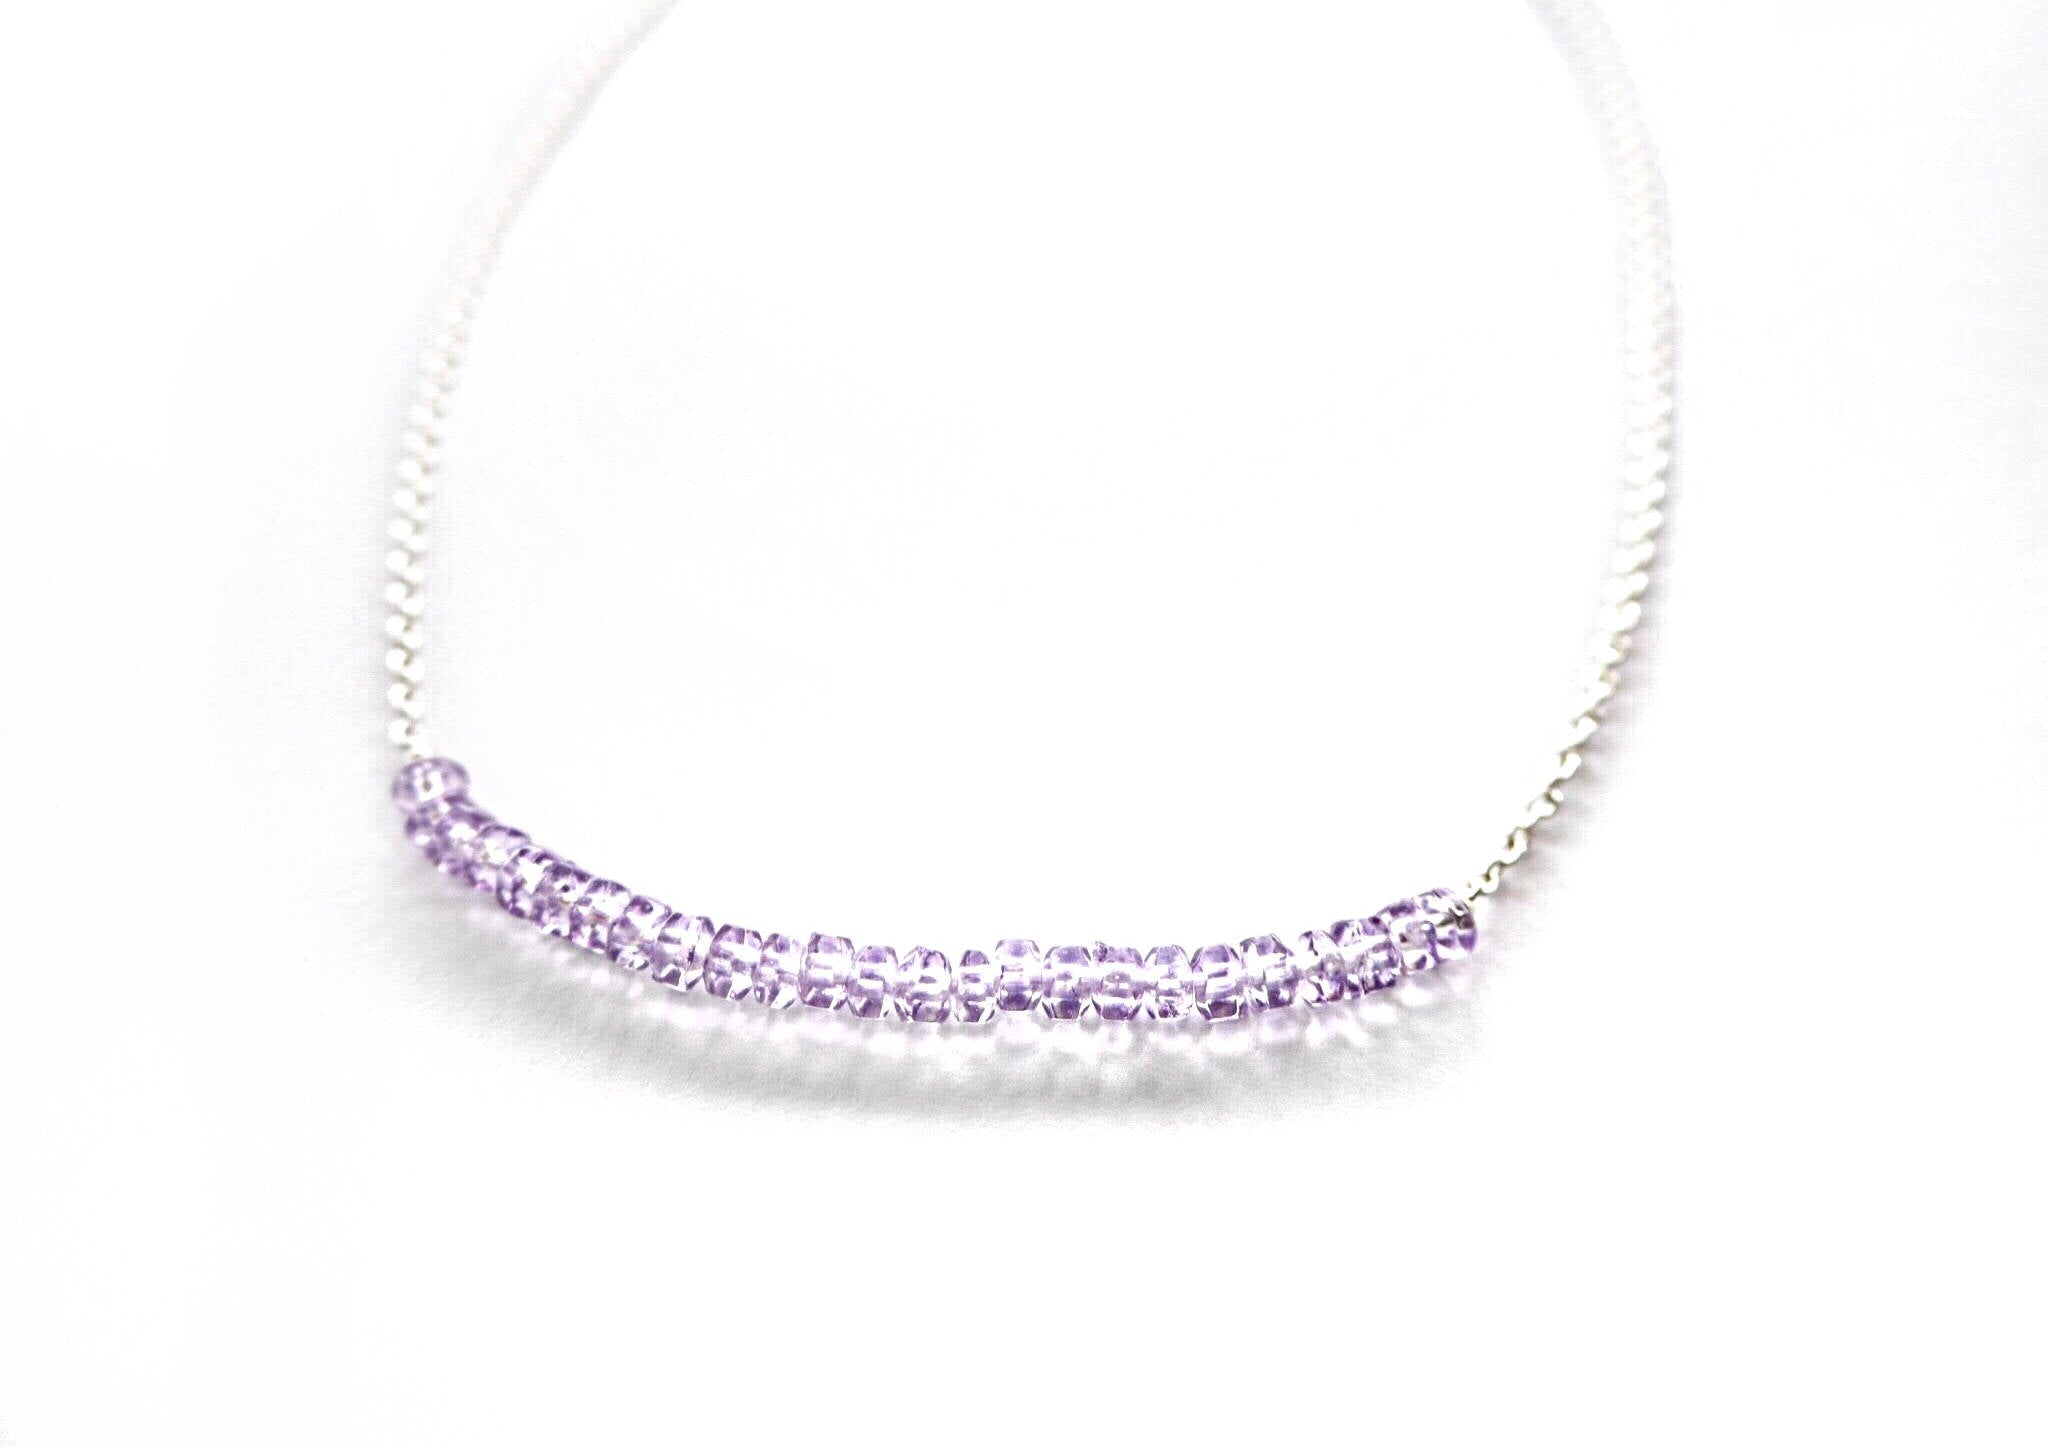 Amethyst - silver chain necklace with amethyst quartz rondels centre